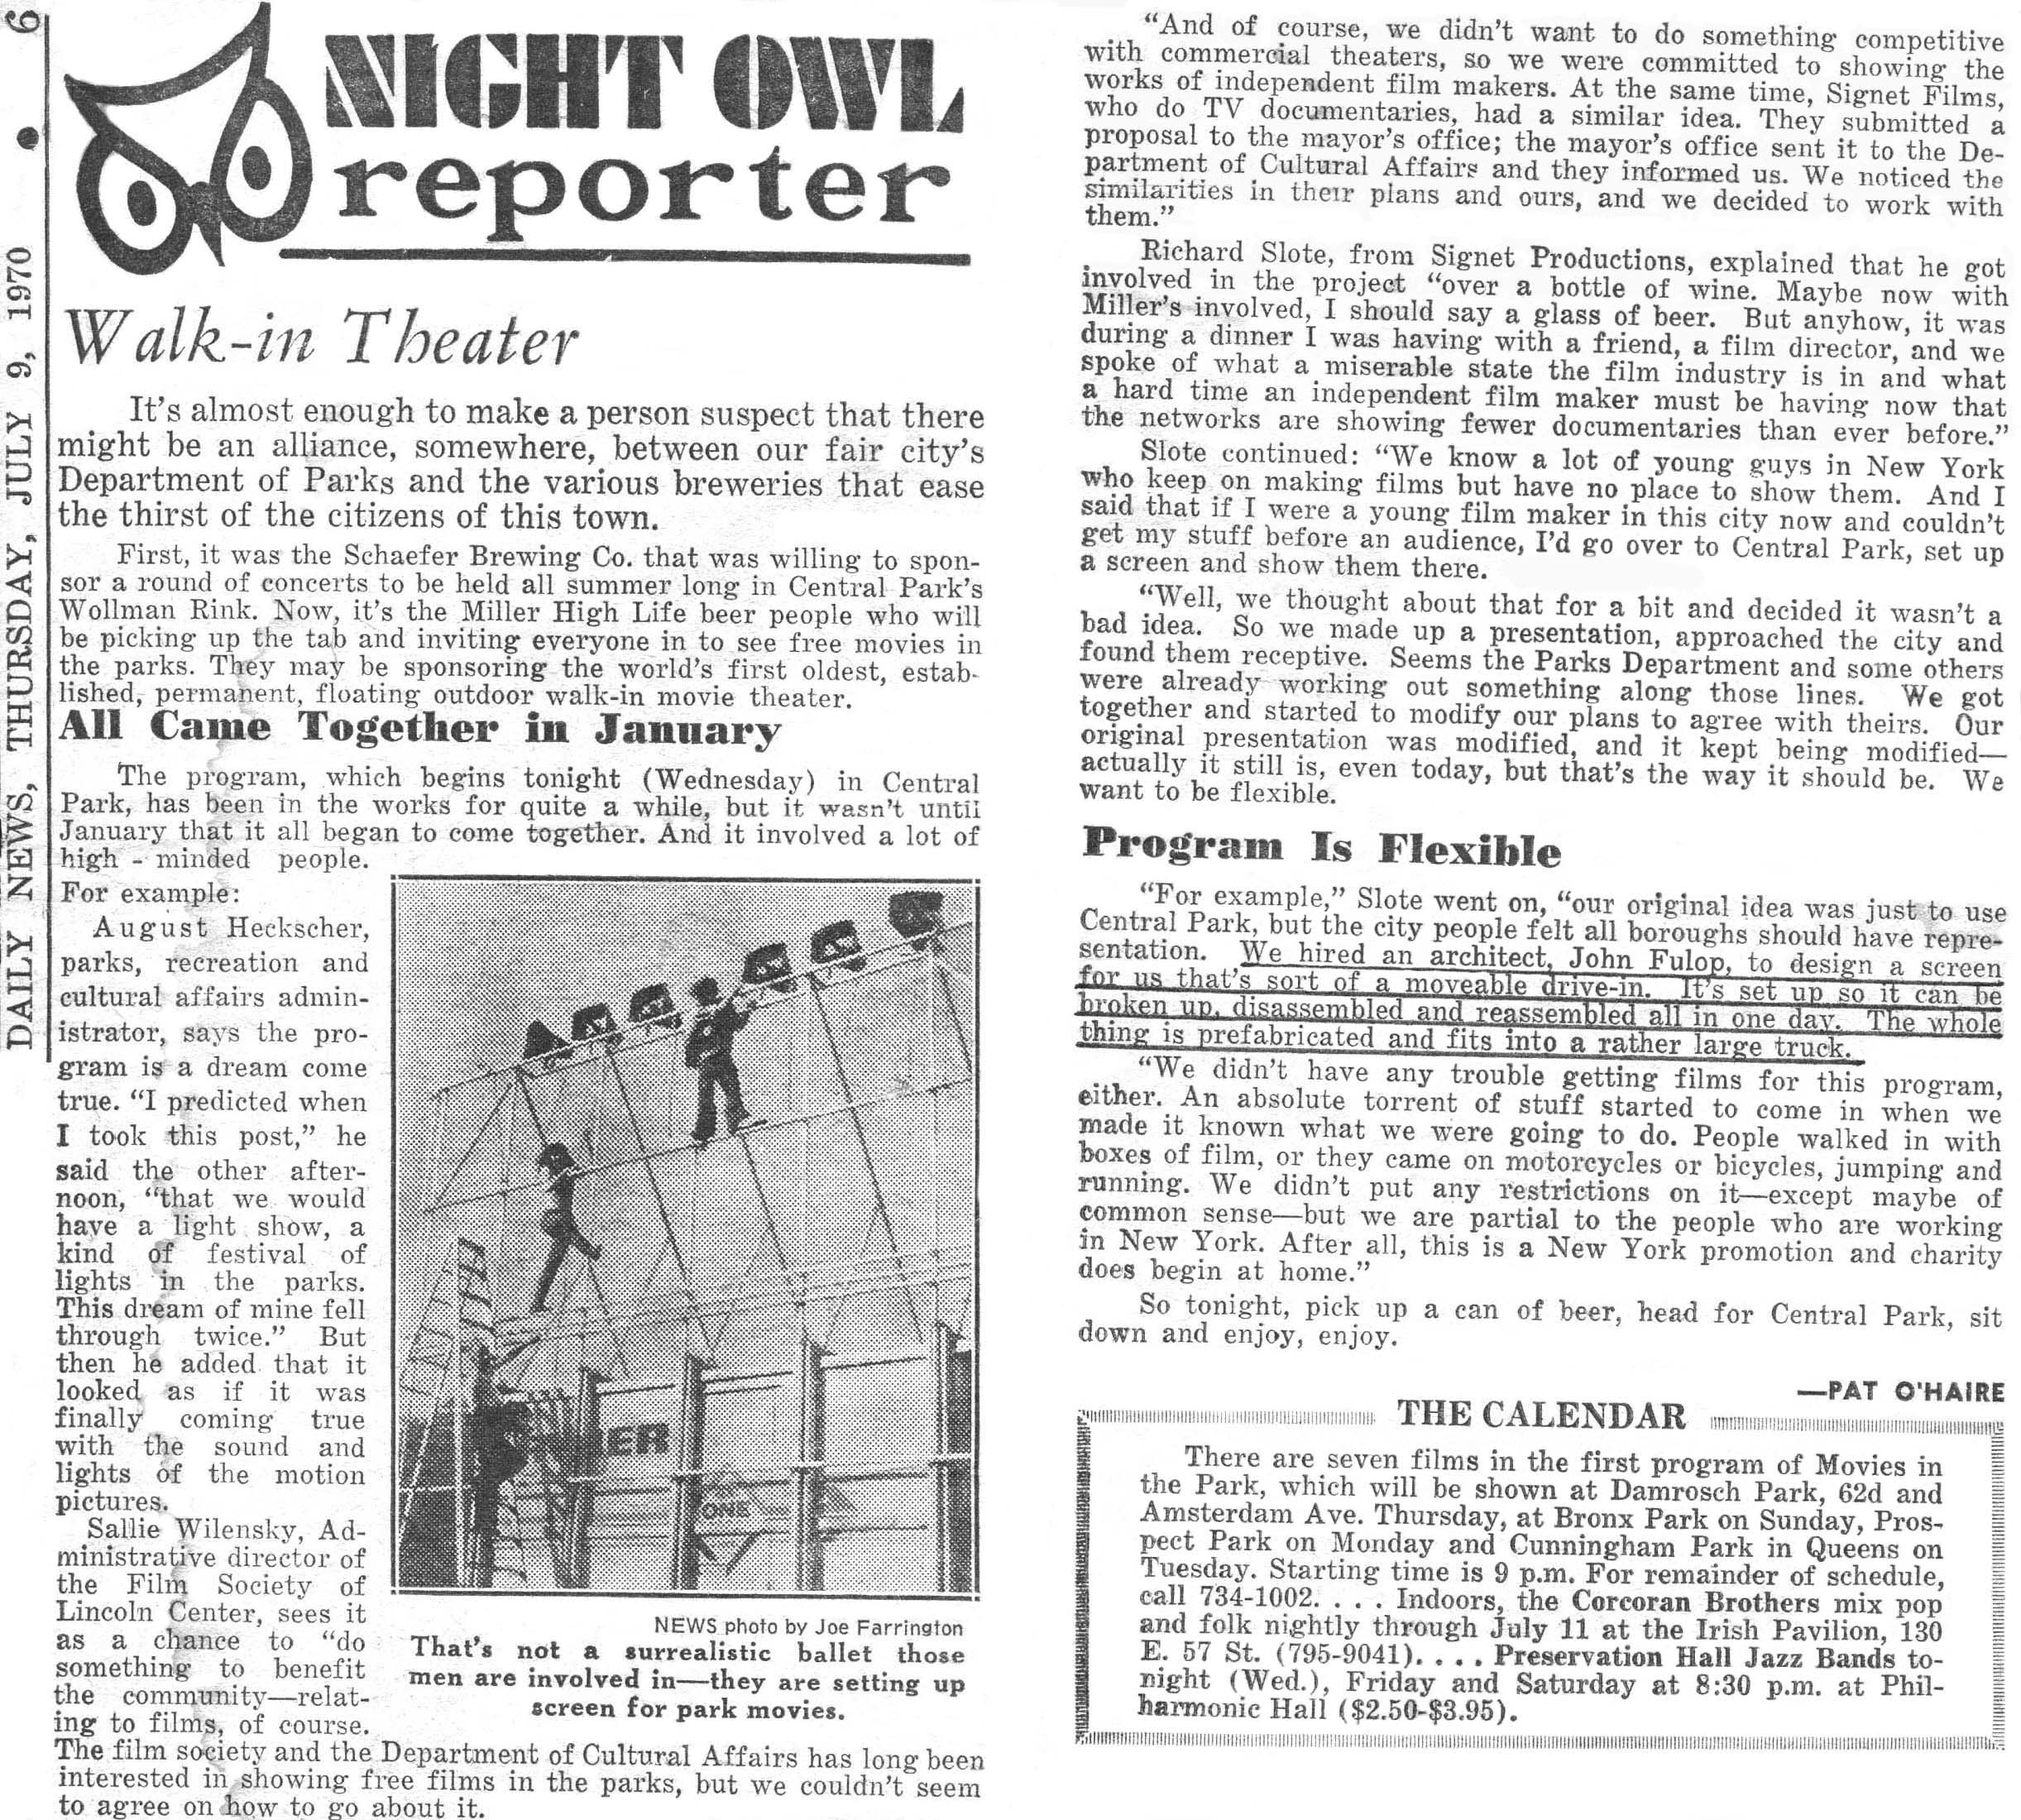 Daily News Article - July 9, 1970